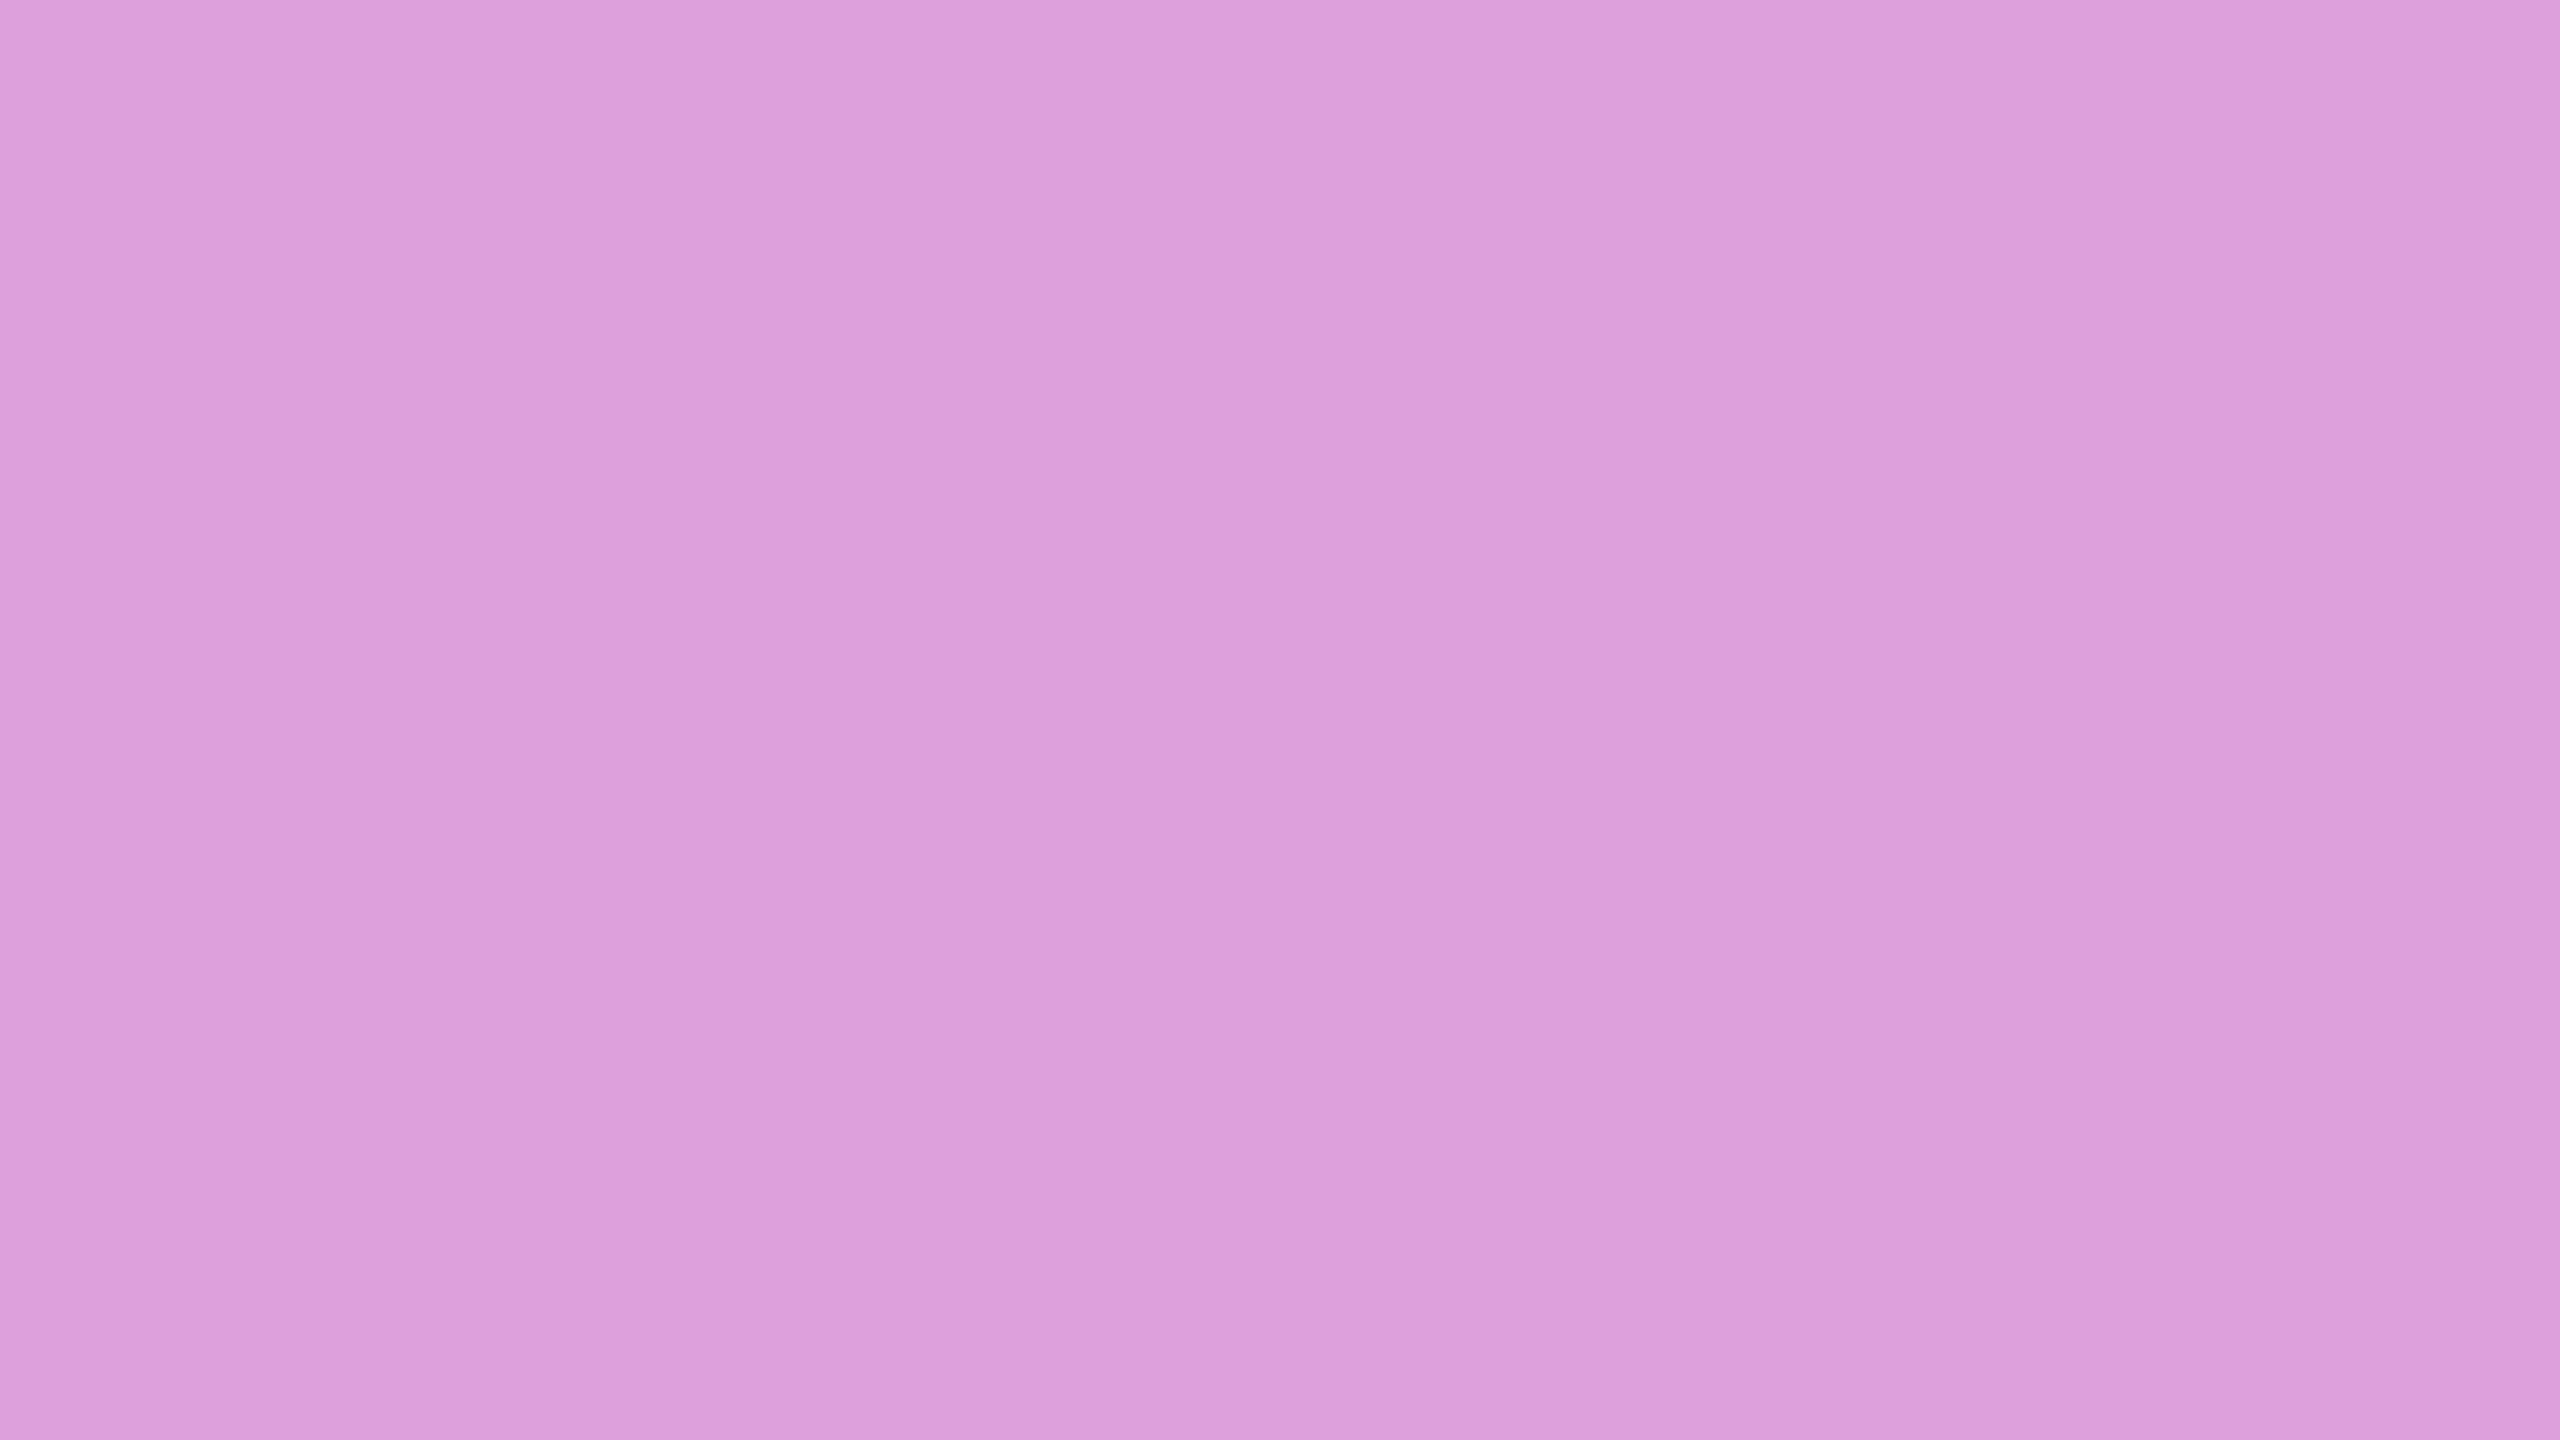 2560x1440 Pale Plum Solid Color Background